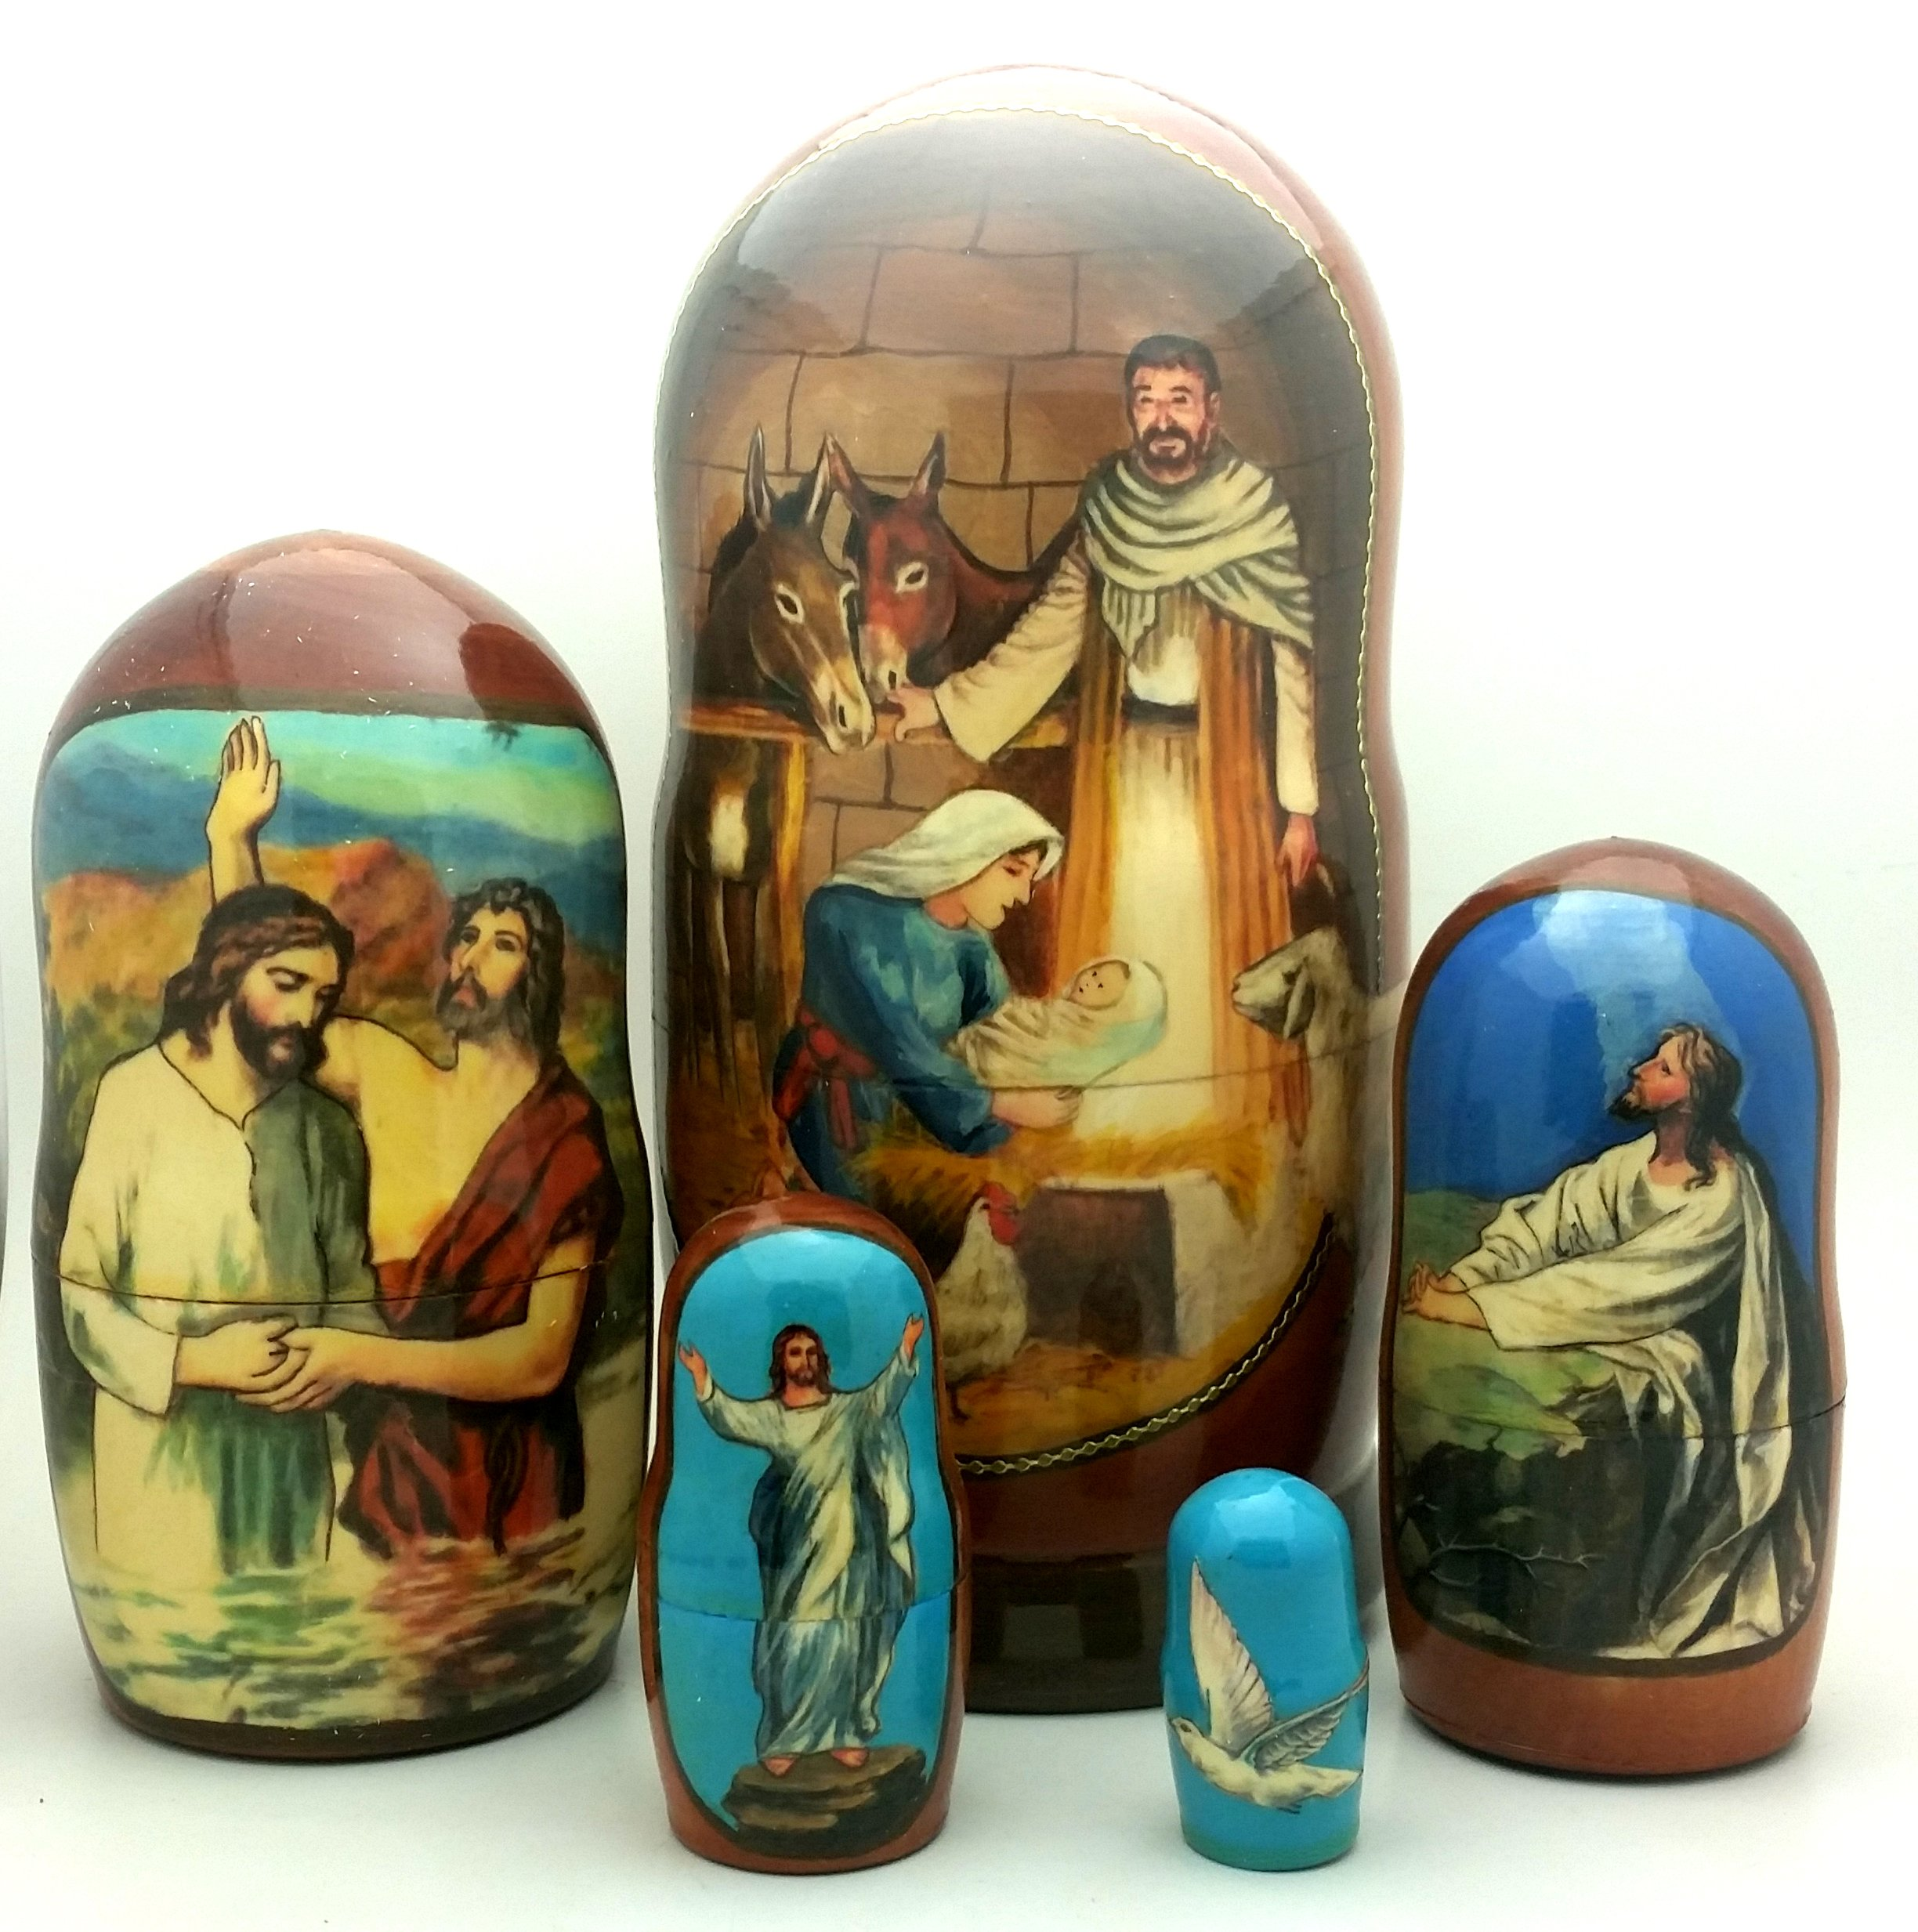 Nativity Jesus Life Nesting Doll Hand Made in Russia 5 Piece 7''H Christmas Set